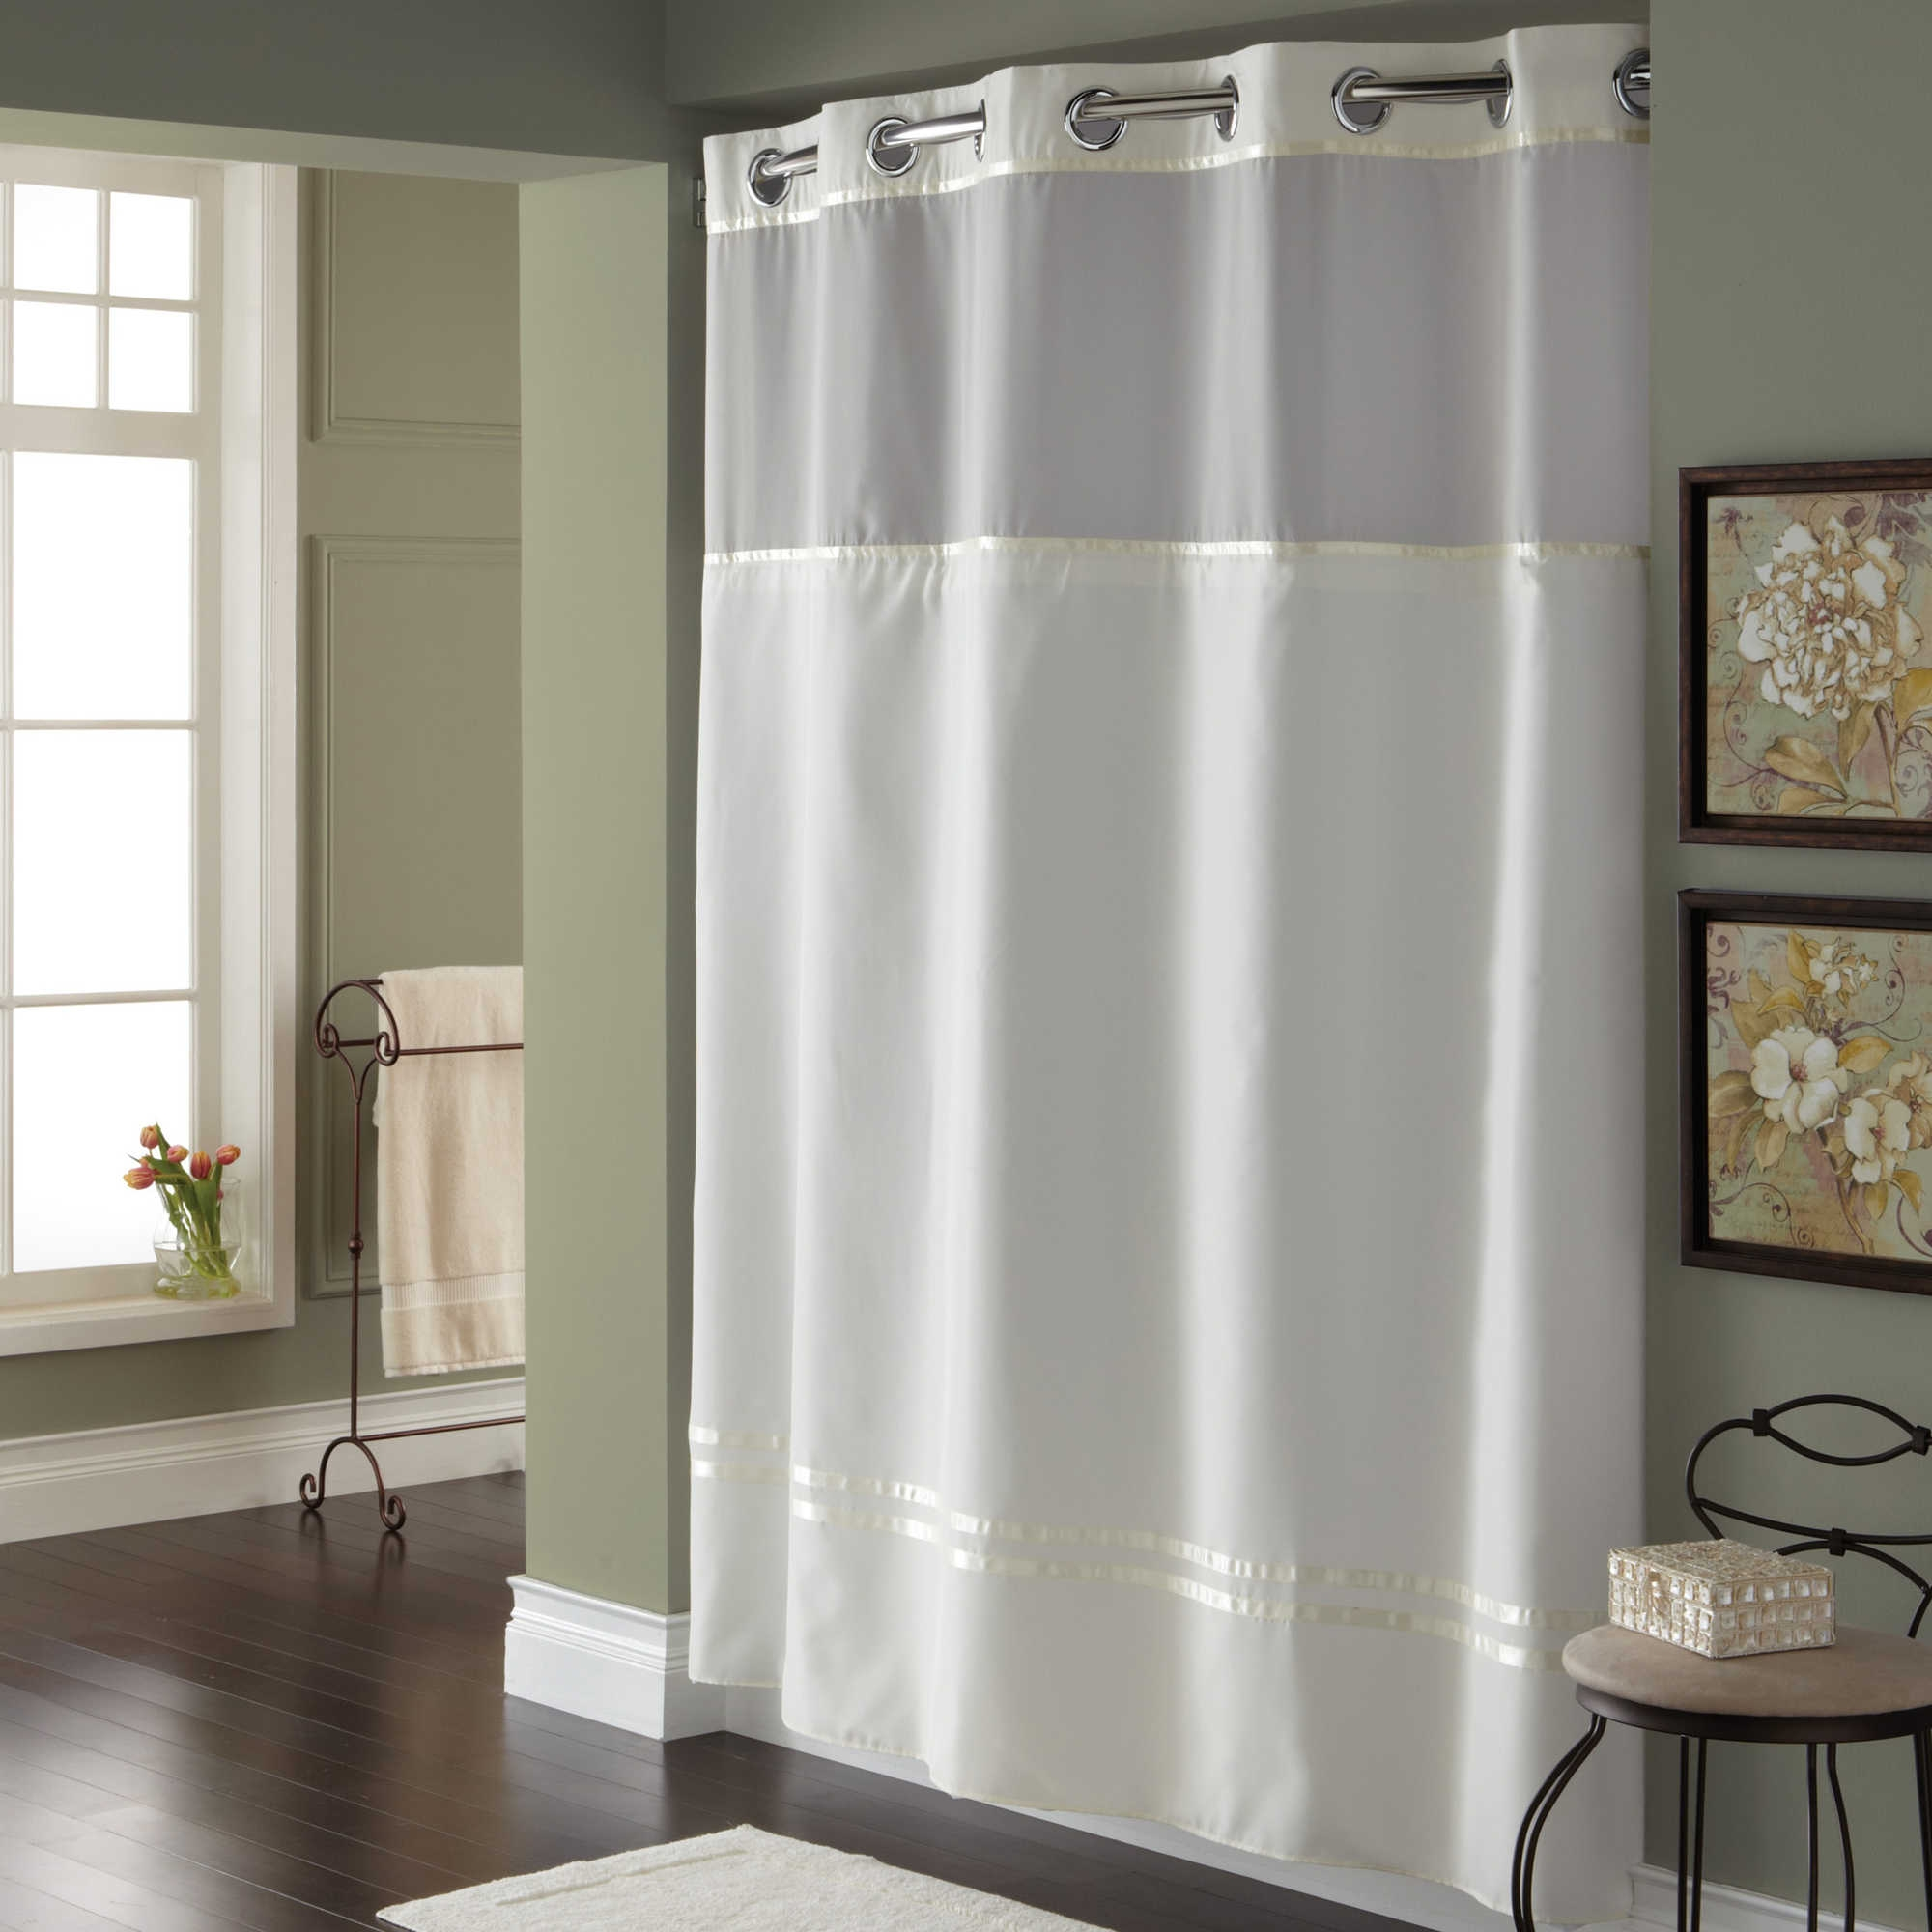 Grey And White Shower Curtains Curtains Decoration In Hookless Fabric Shower Curtain Liner (Image 10 of 25)